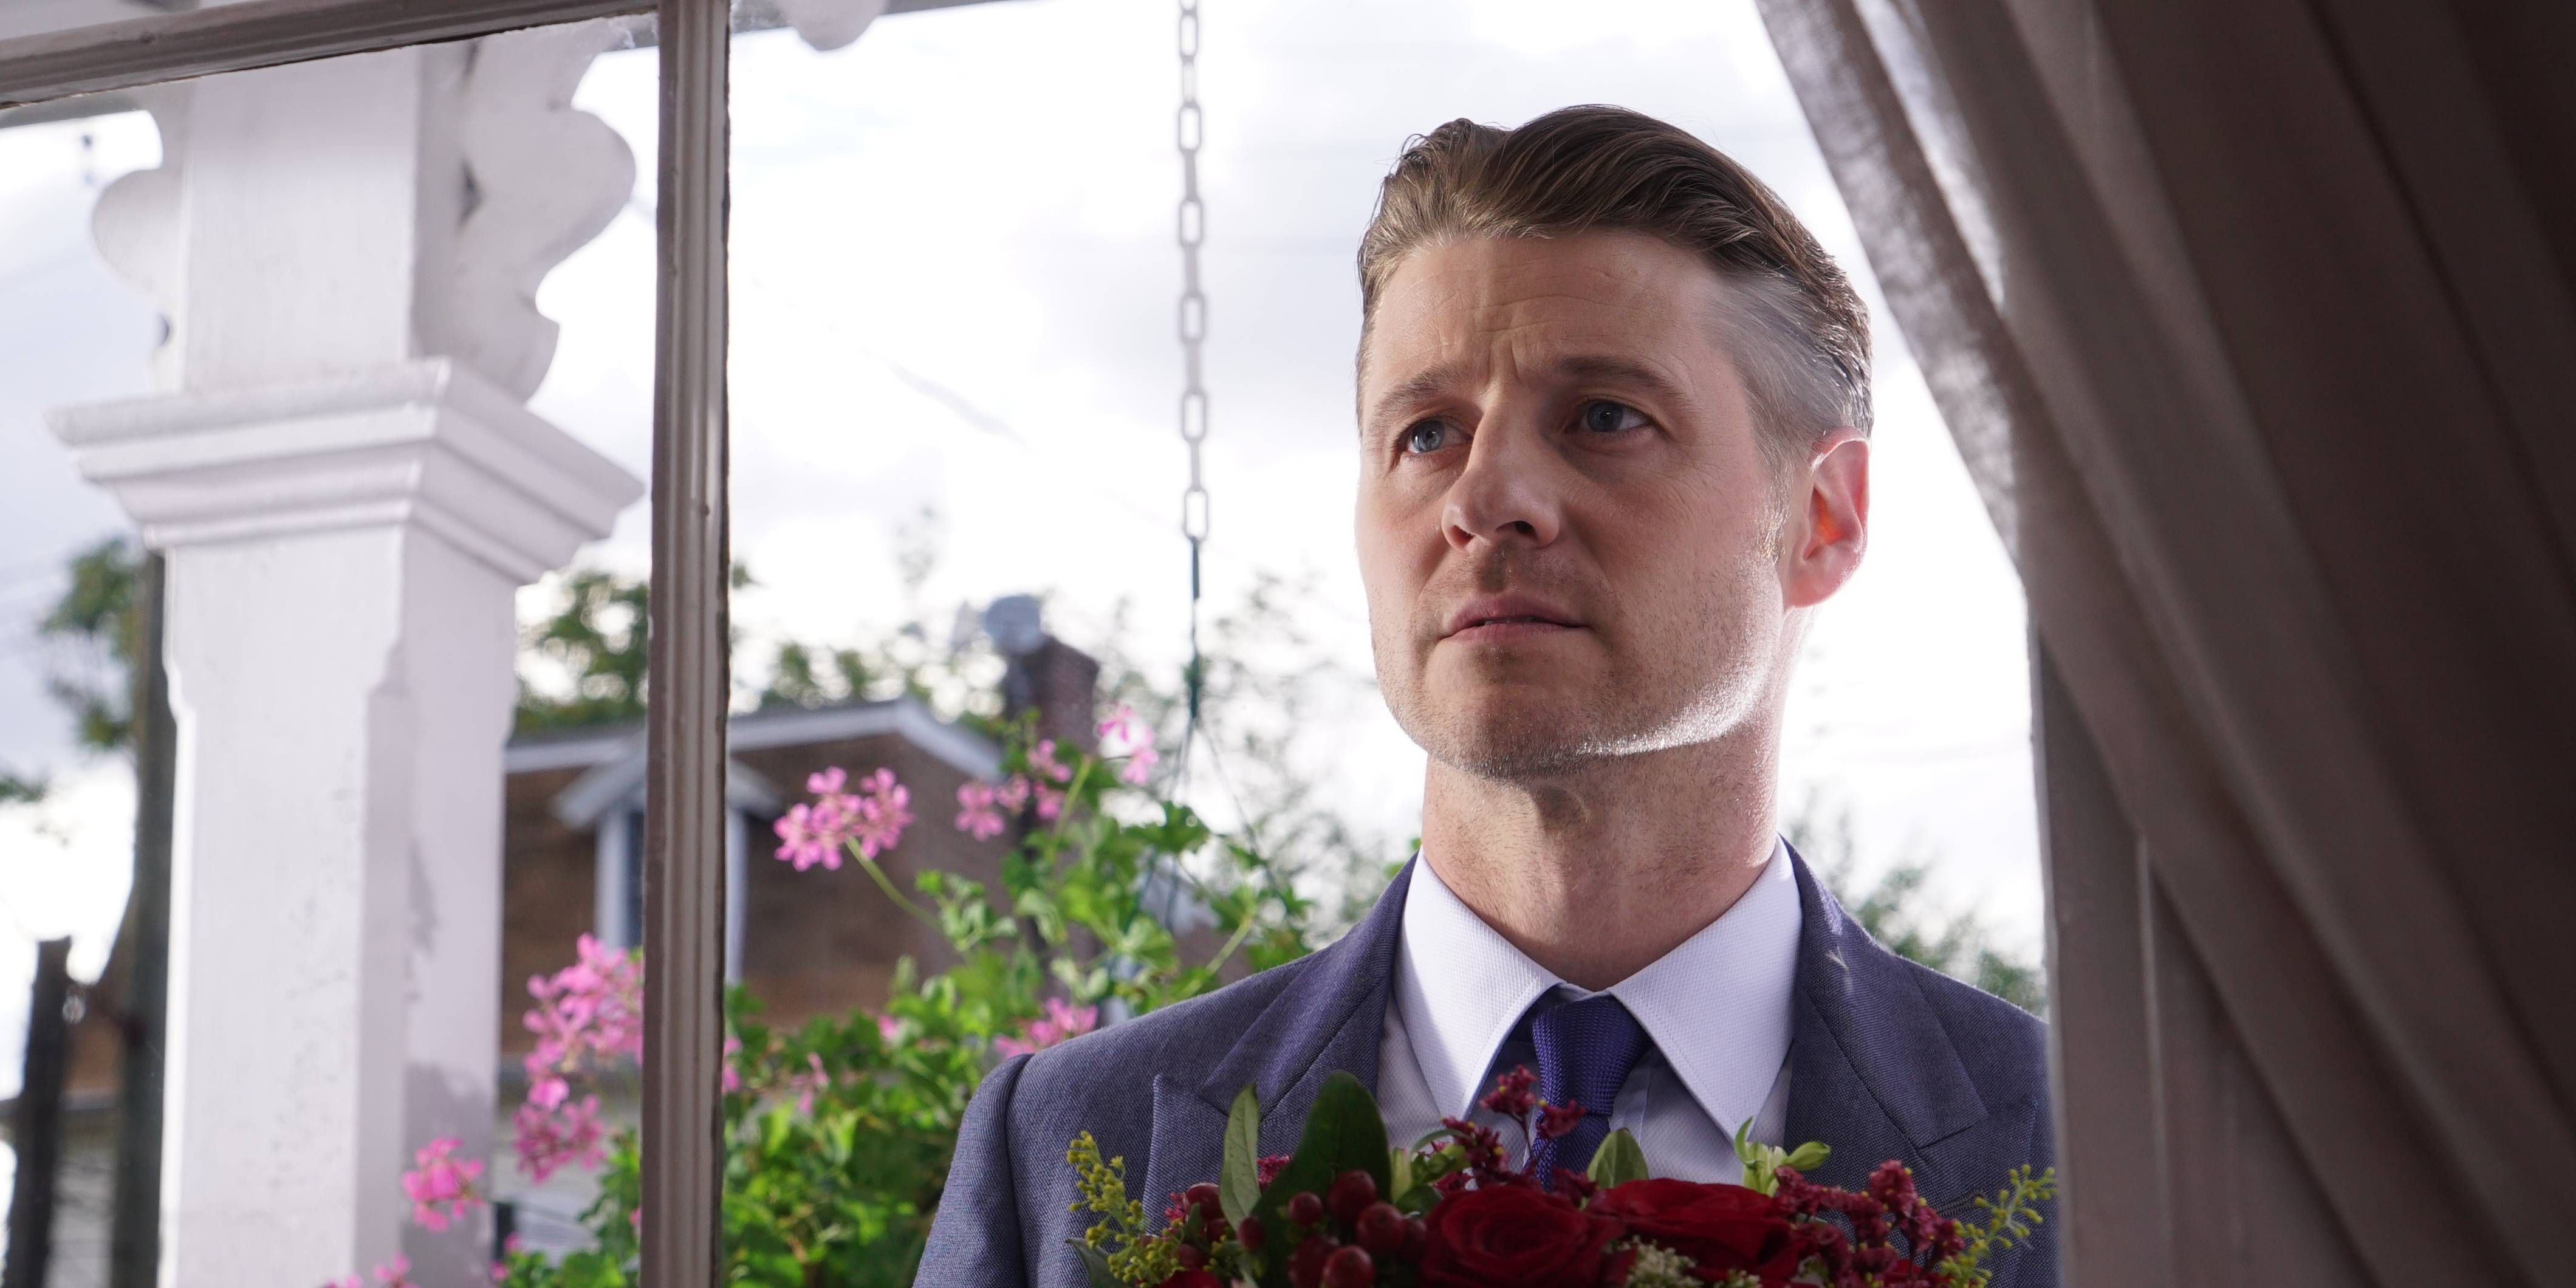 Jim Gordon in Gotham s03e01, 'Mad City: Better to Reign in Hell'